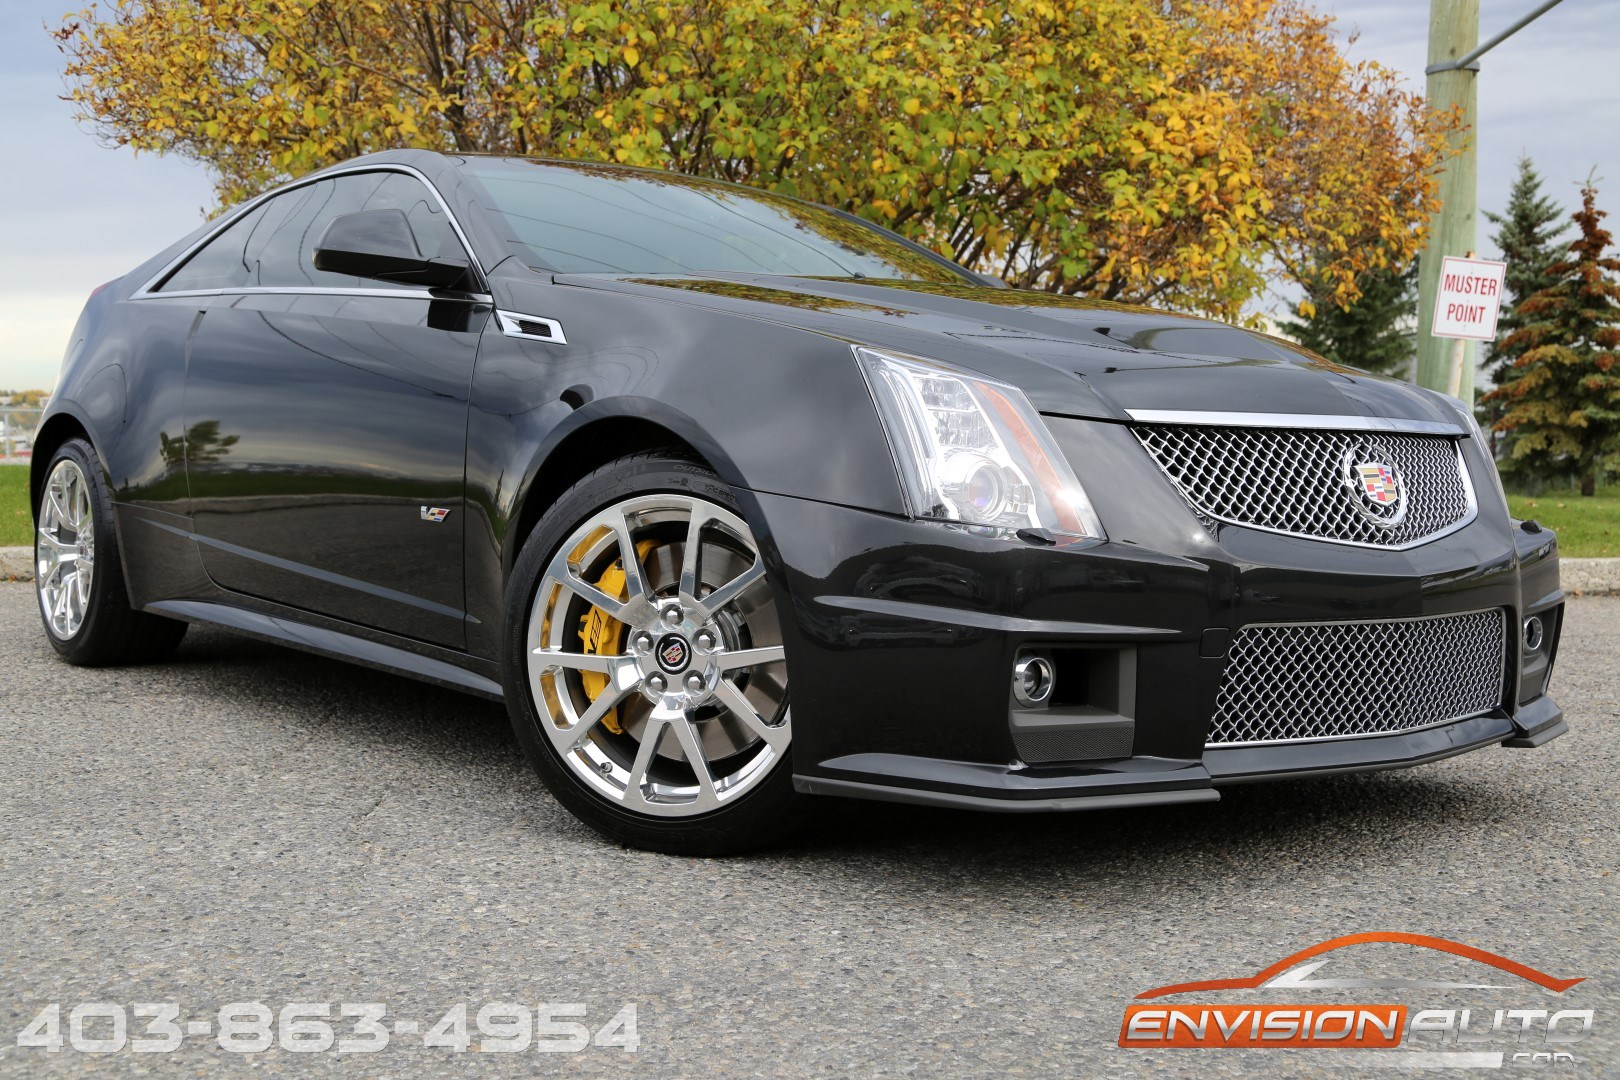 2012 cadillac cts v coupe recaro seats 1 local owner envision auto calgary highline. Black Bedroom Furniture Sets. Home Design Ideas